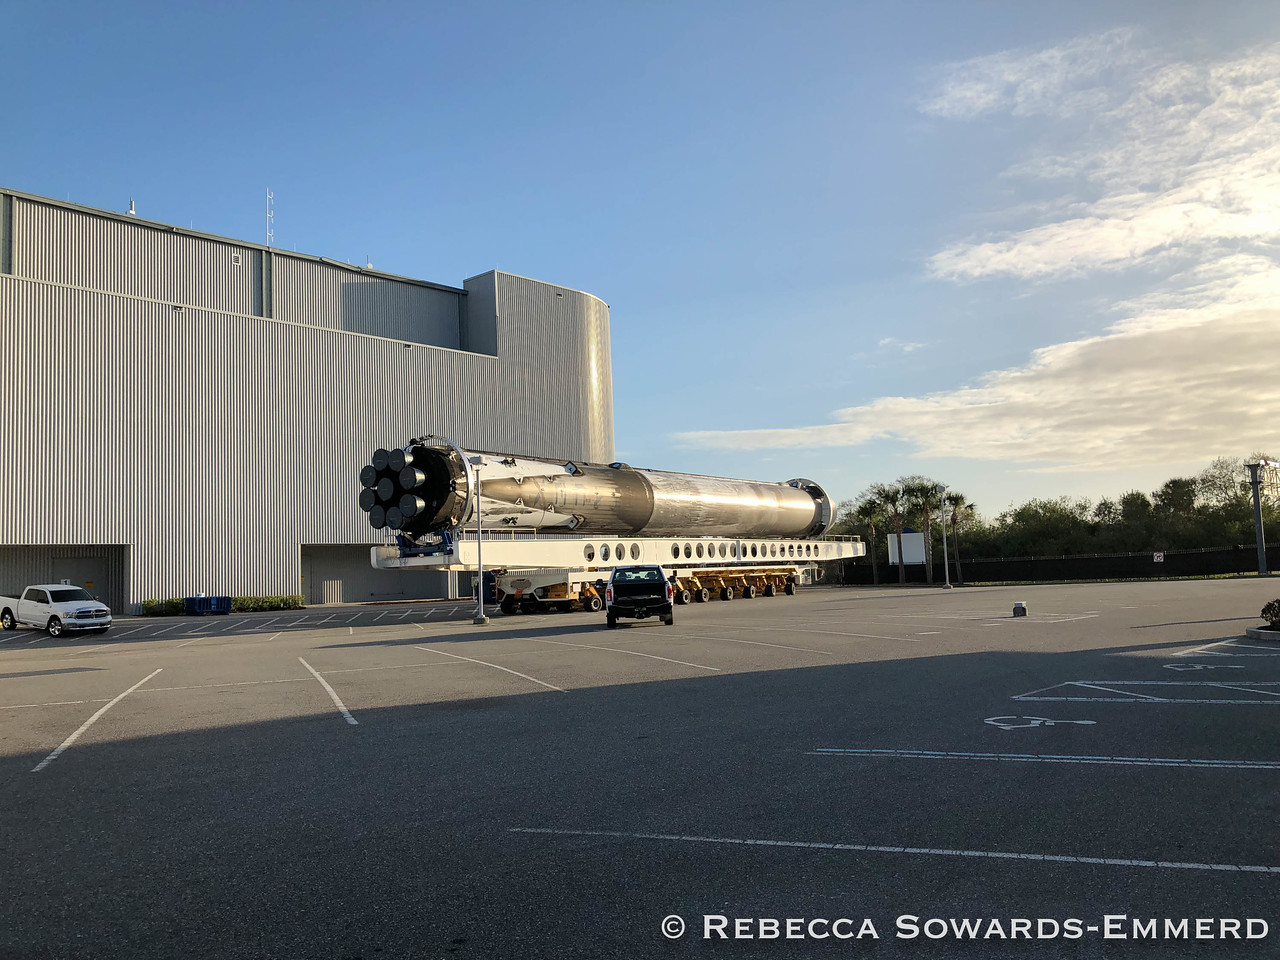 A Booster from SpaceX Falcon Heavy Launch was still sitting on its transport trailer behind the scenes. Super excited to have been able to see it!